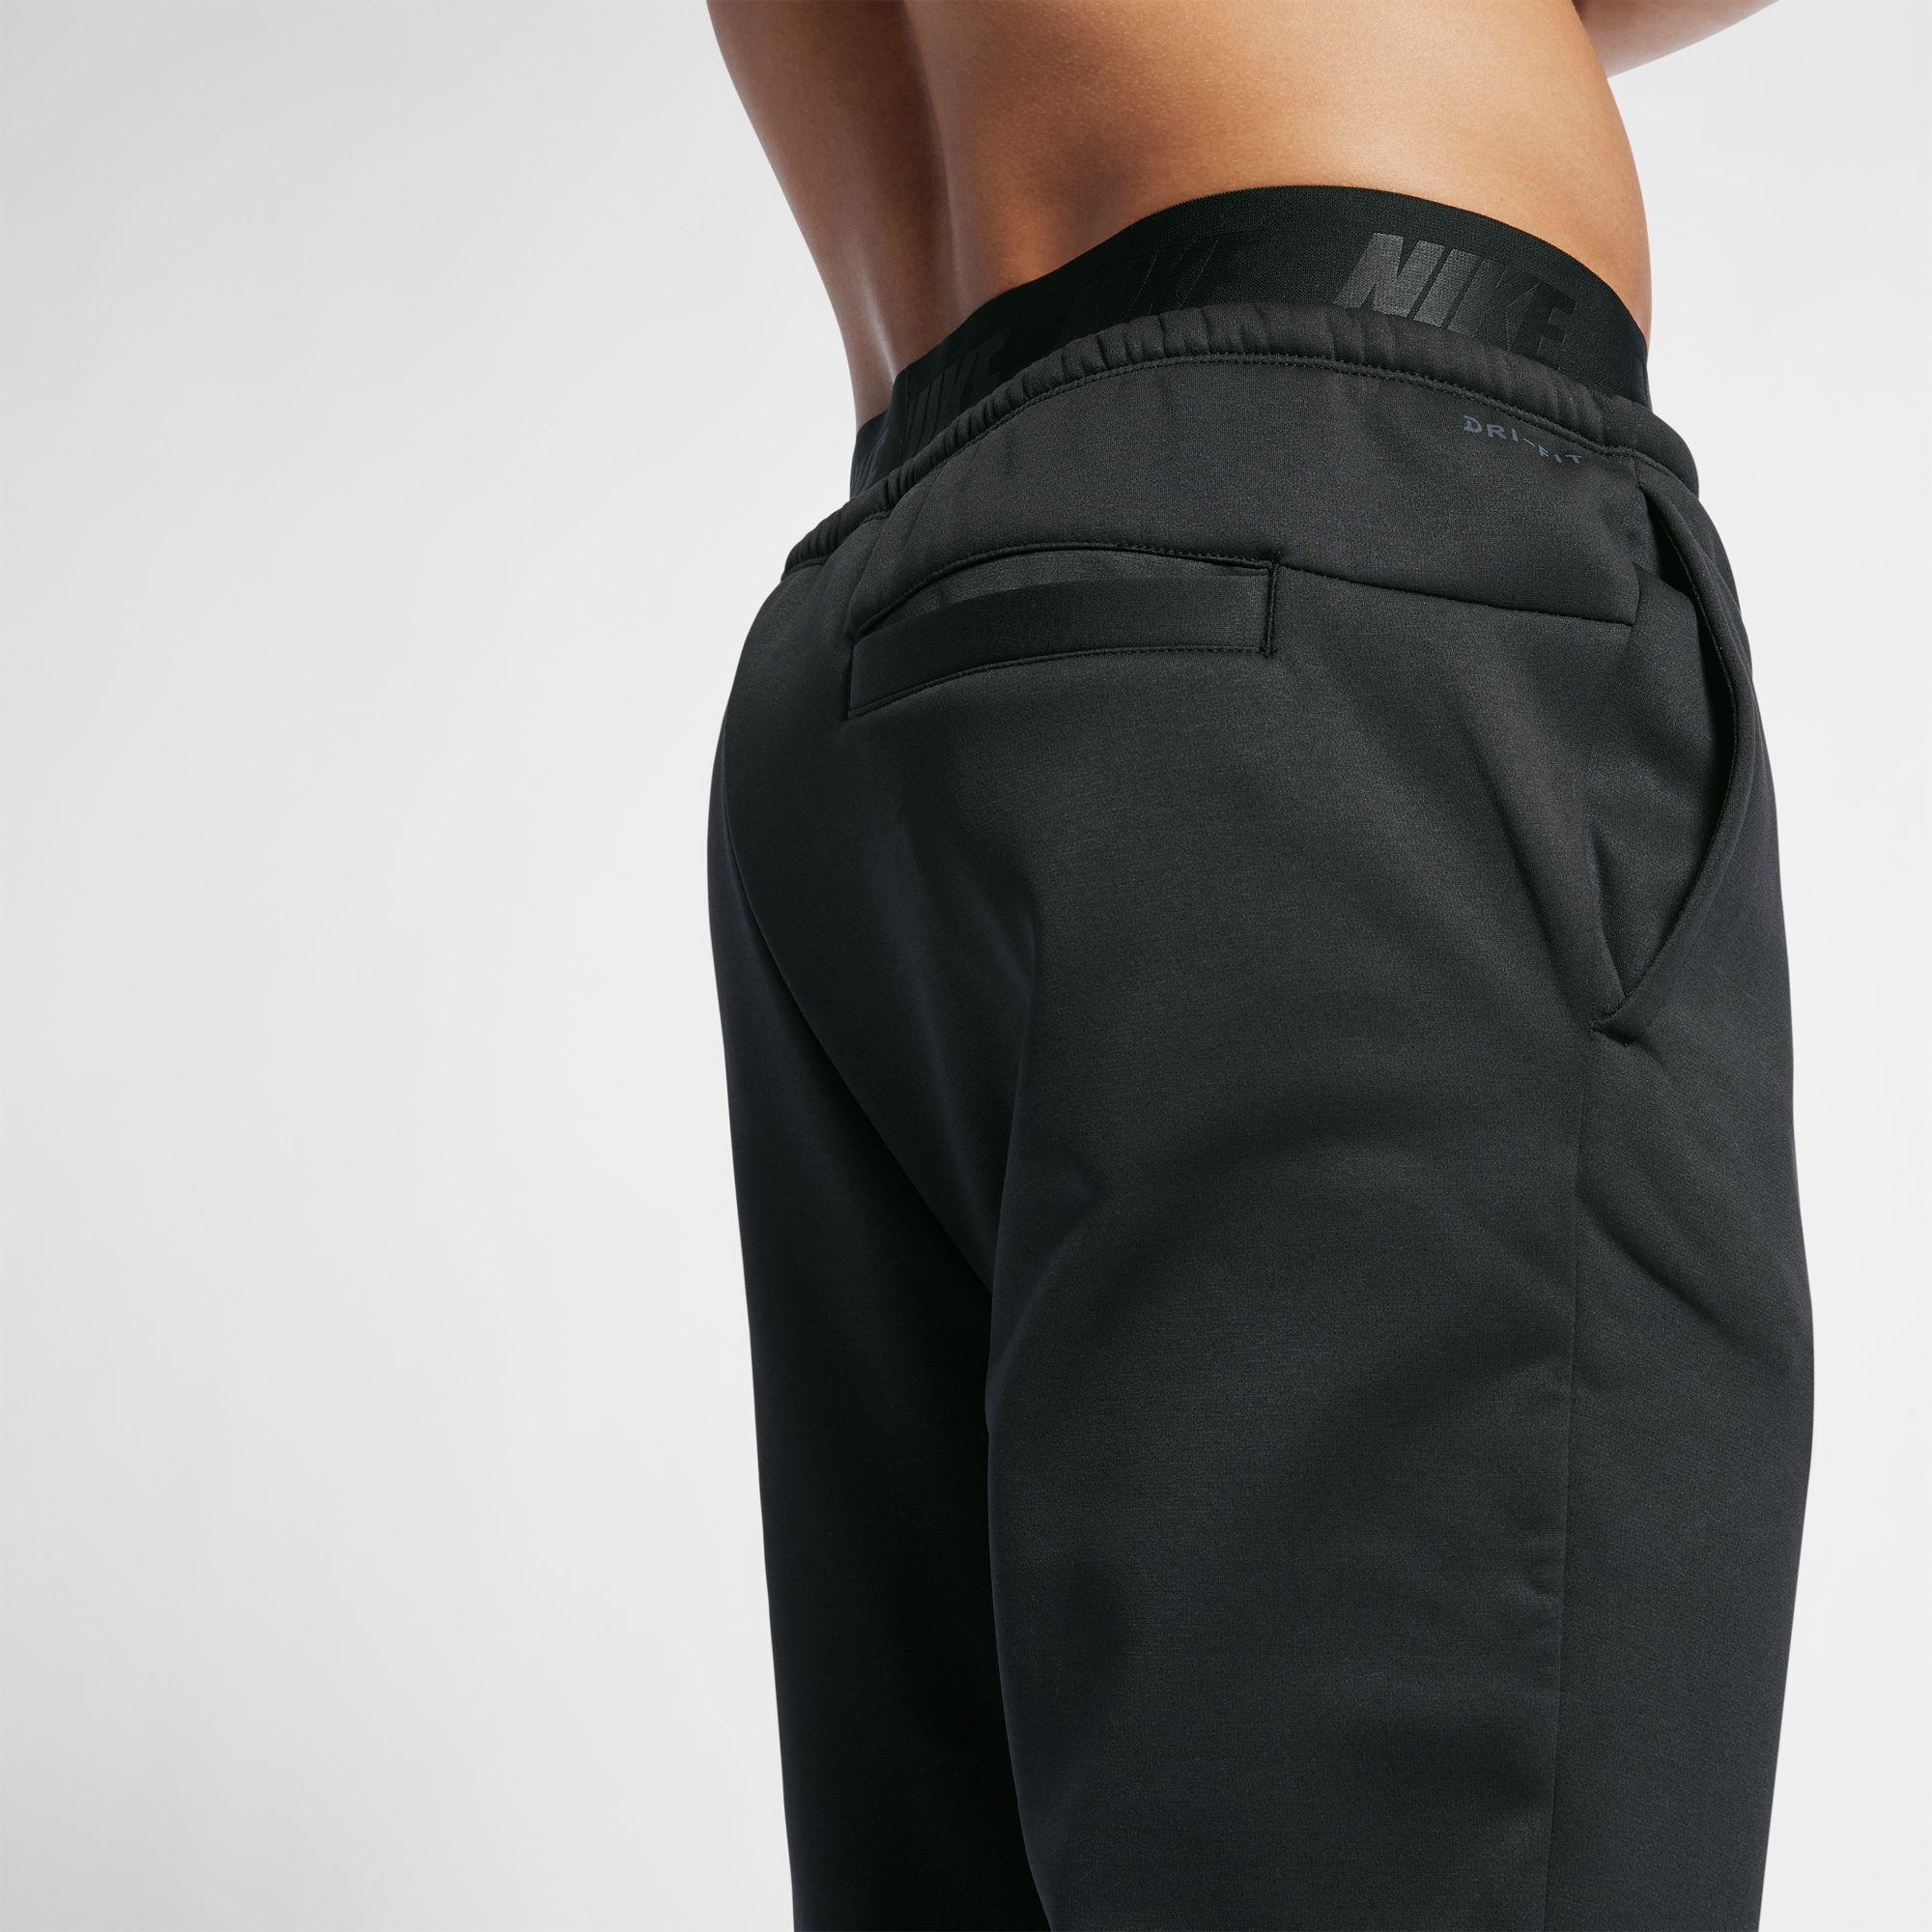 01768fd6842d2 Nike Therma Project X Pants 3.0 in Black for Men - Lyst